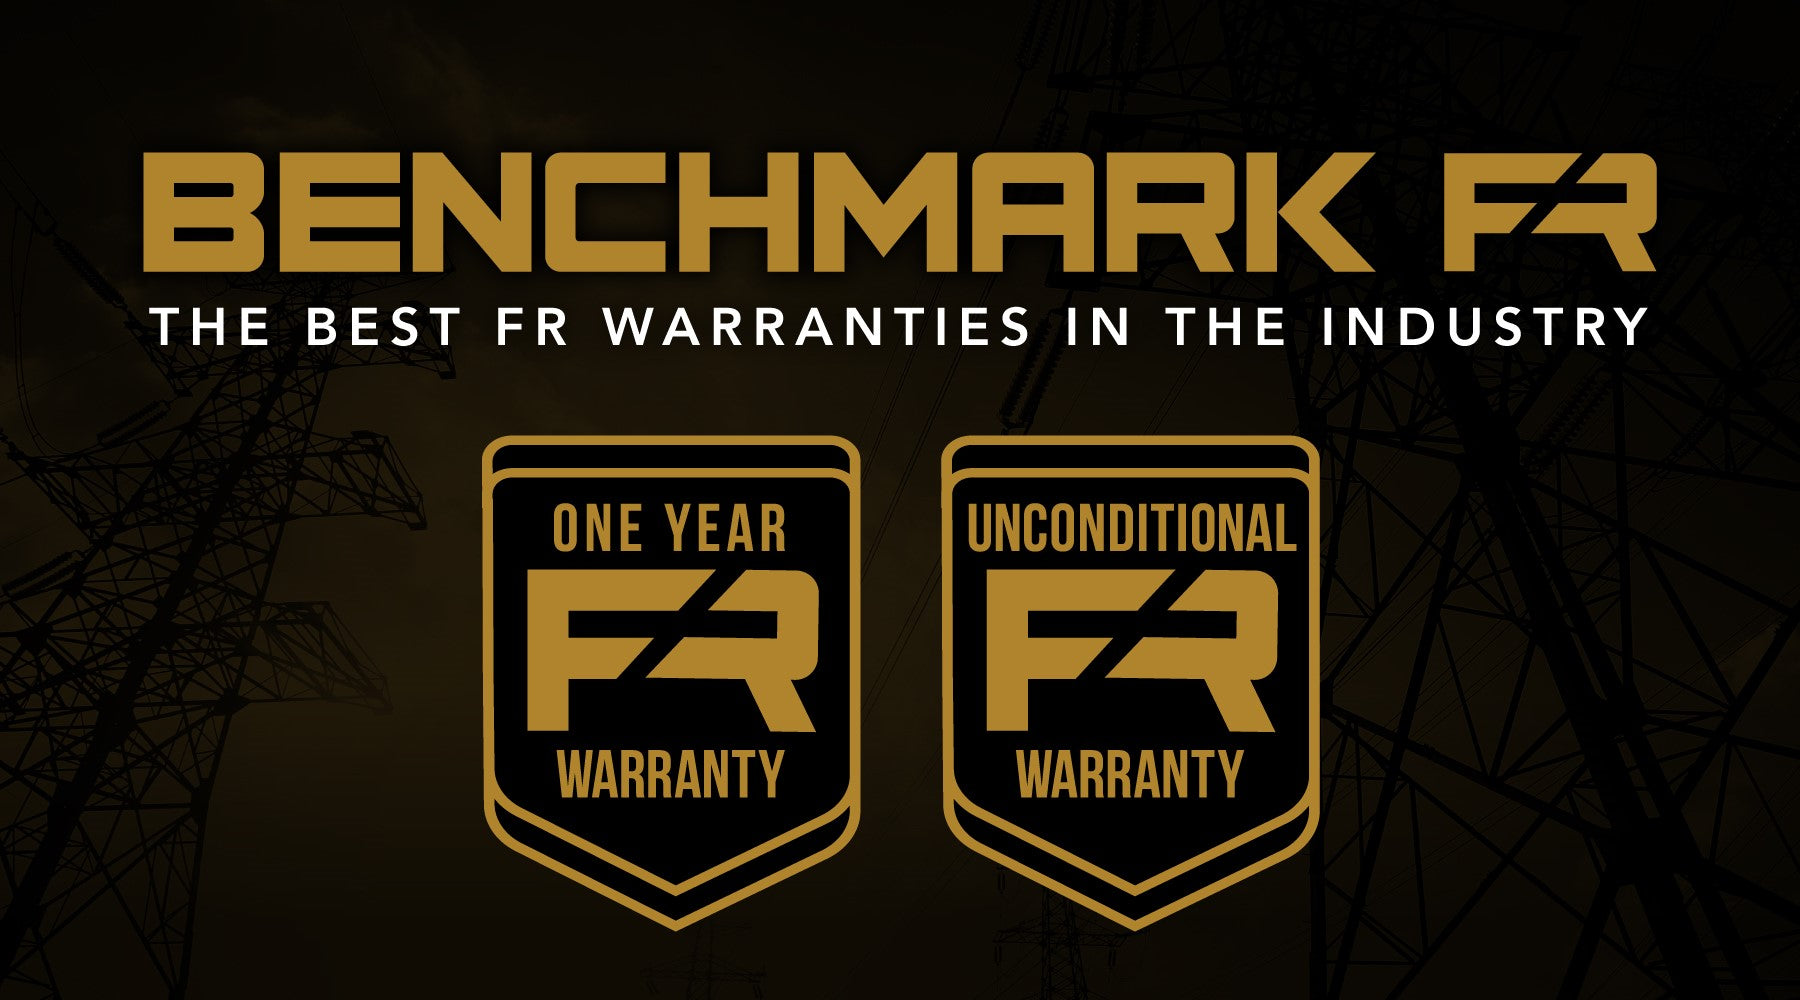 benchmark warranty page banner